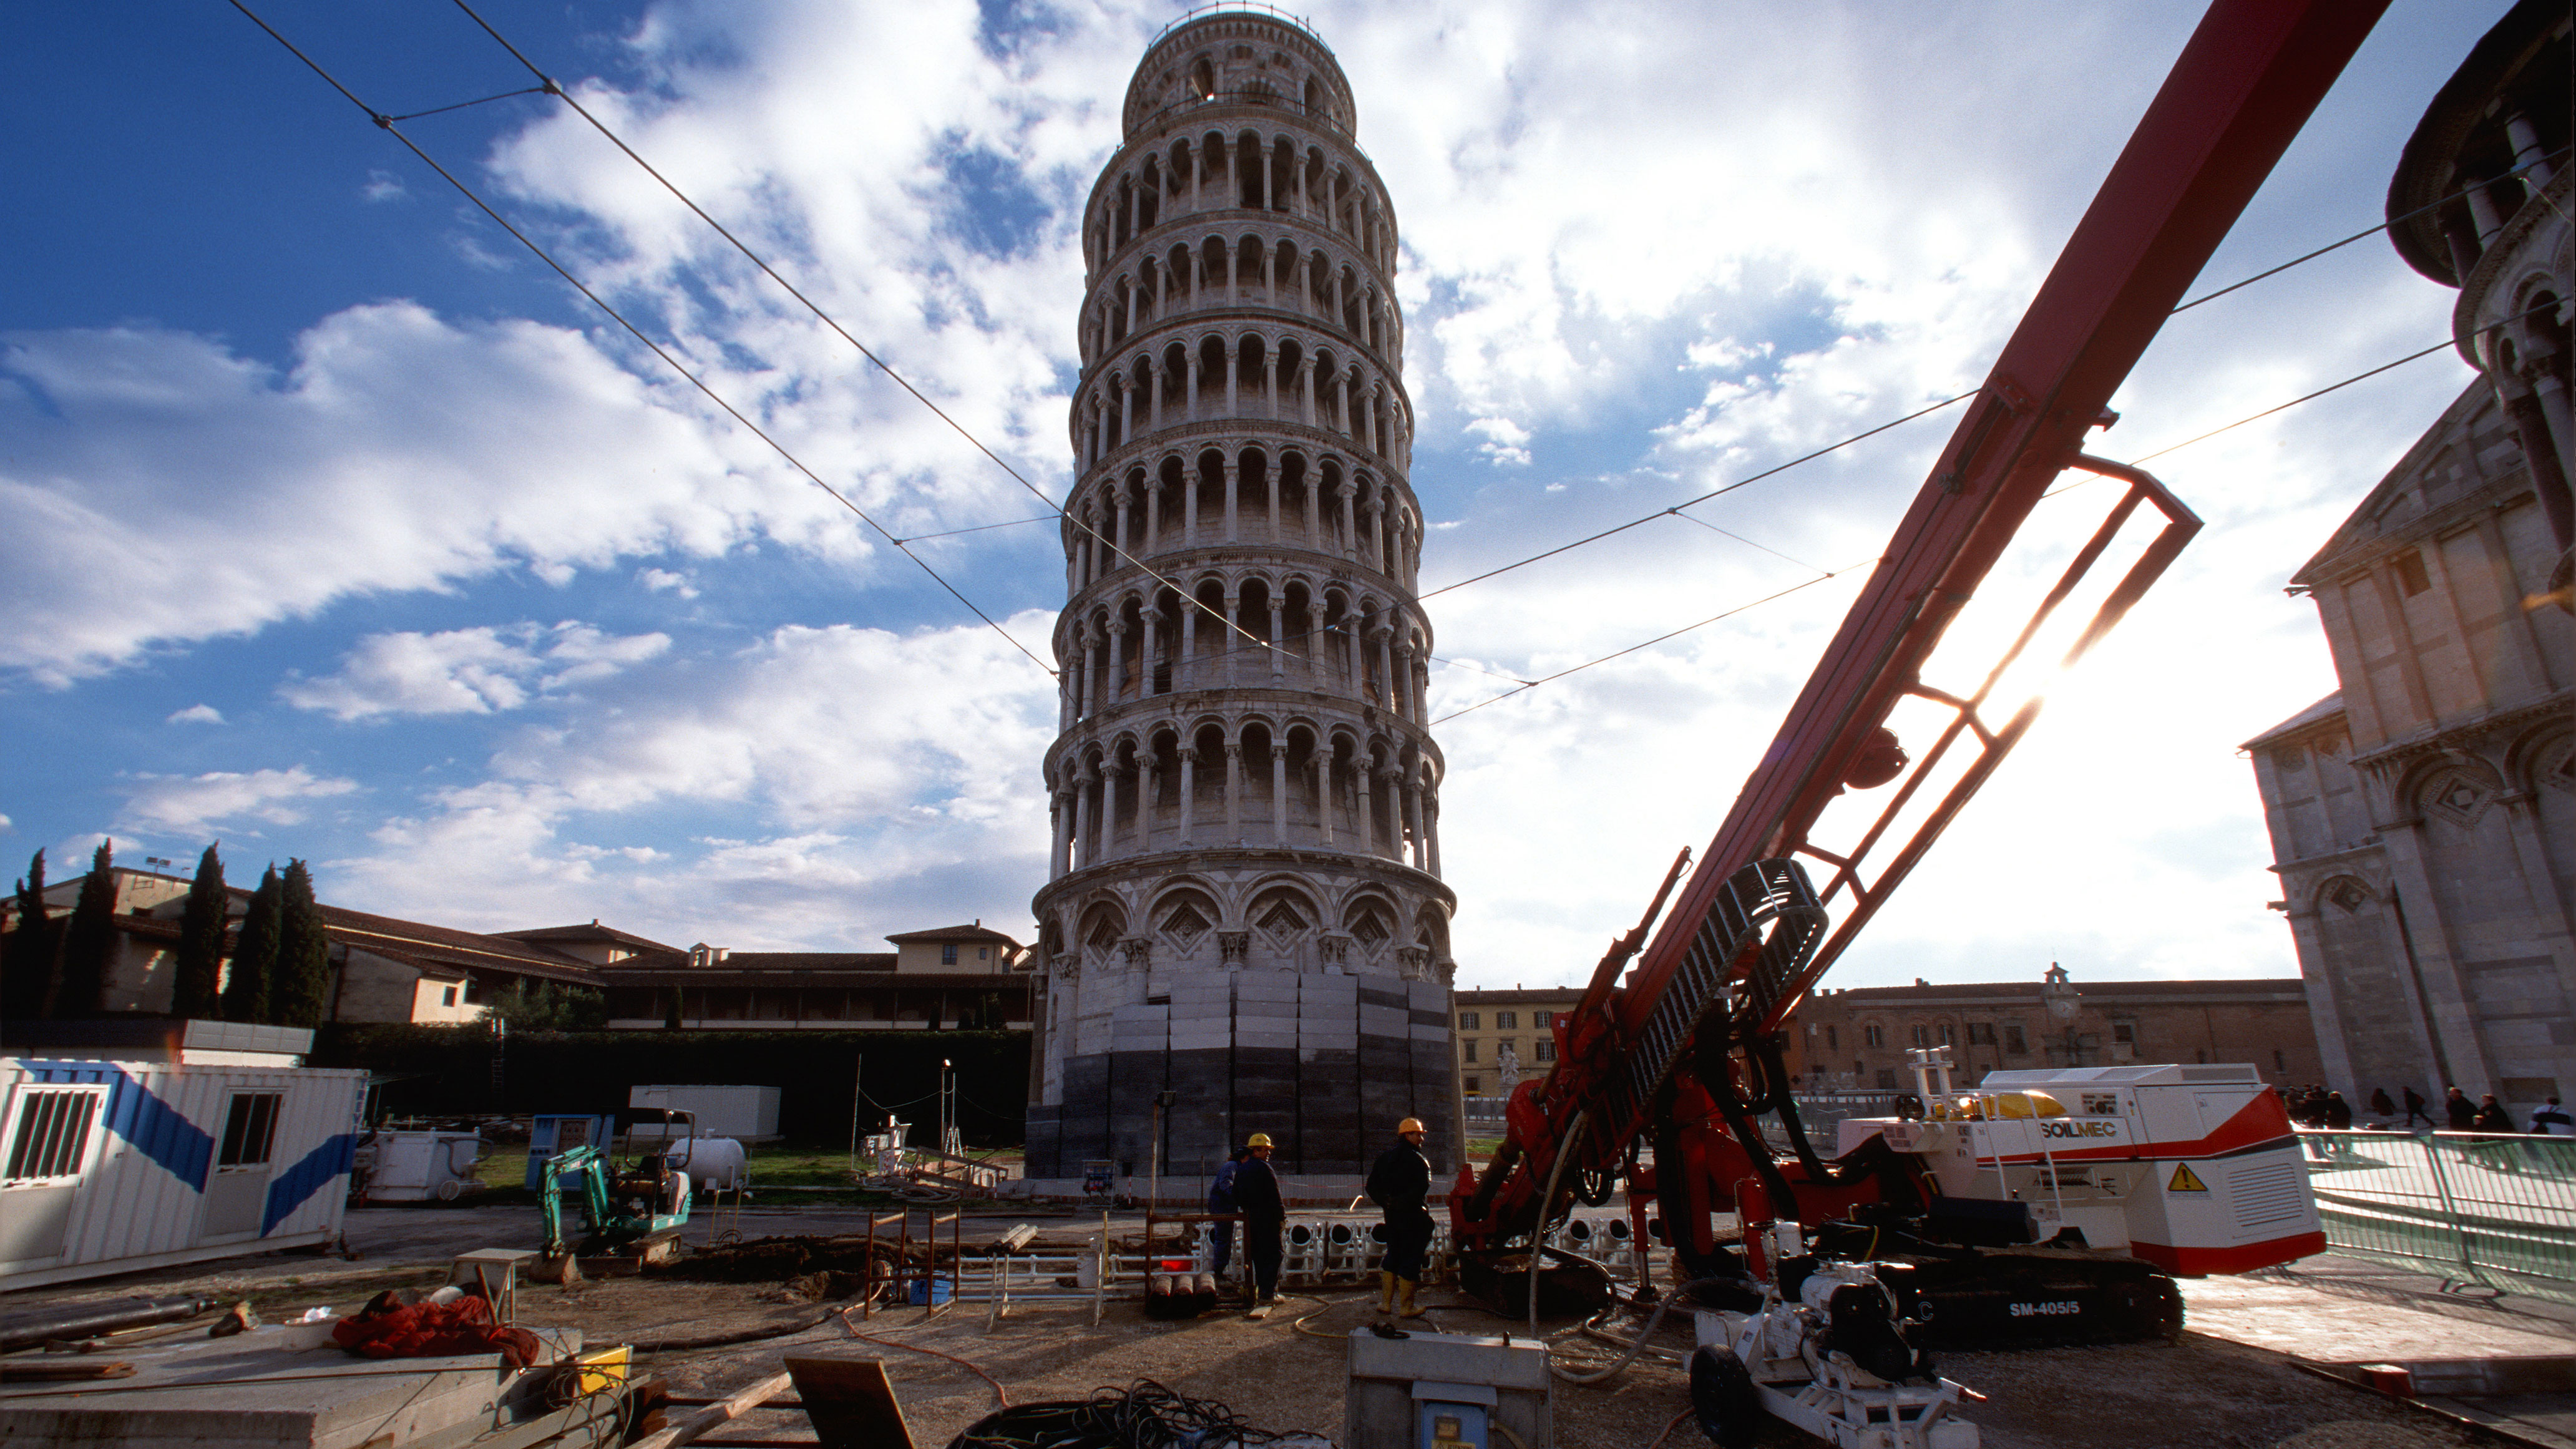 The restoration of the LEANING TOWER OF PISA | Trevi 1